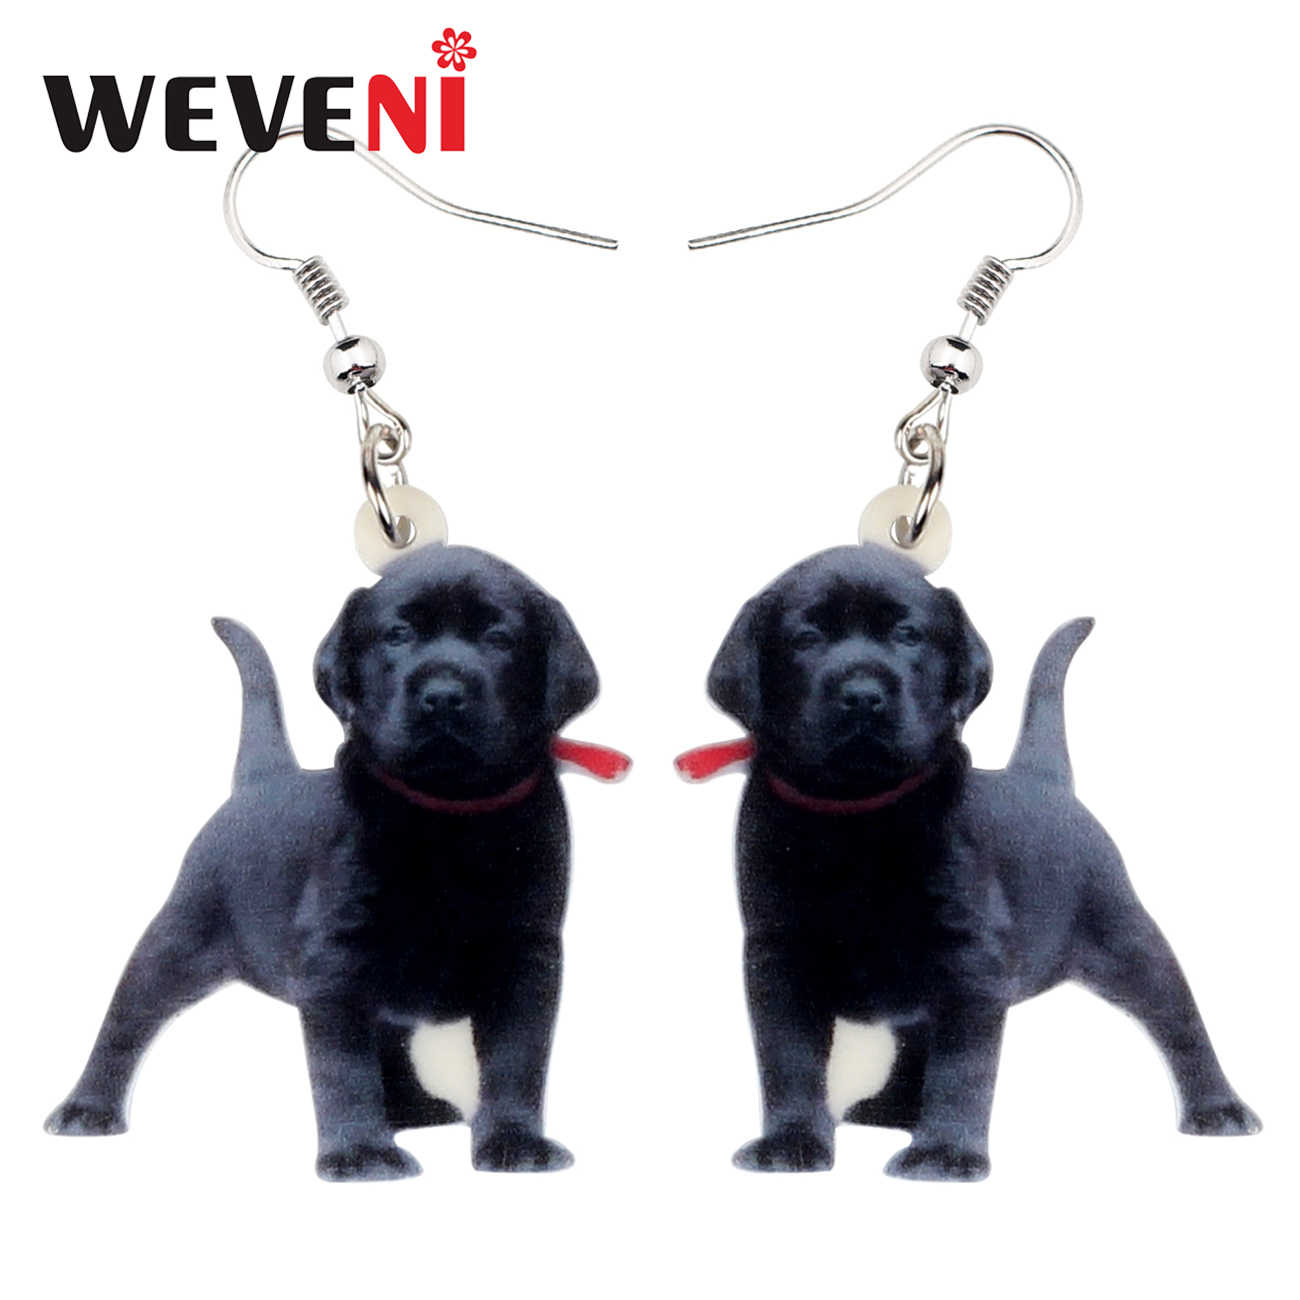 WEVENI Acrylic Black Labrador Dog Earrings Big Dangle Drop Cute Animal Pet Jewelry For Women Girls Ladies Gift Charms Femme New